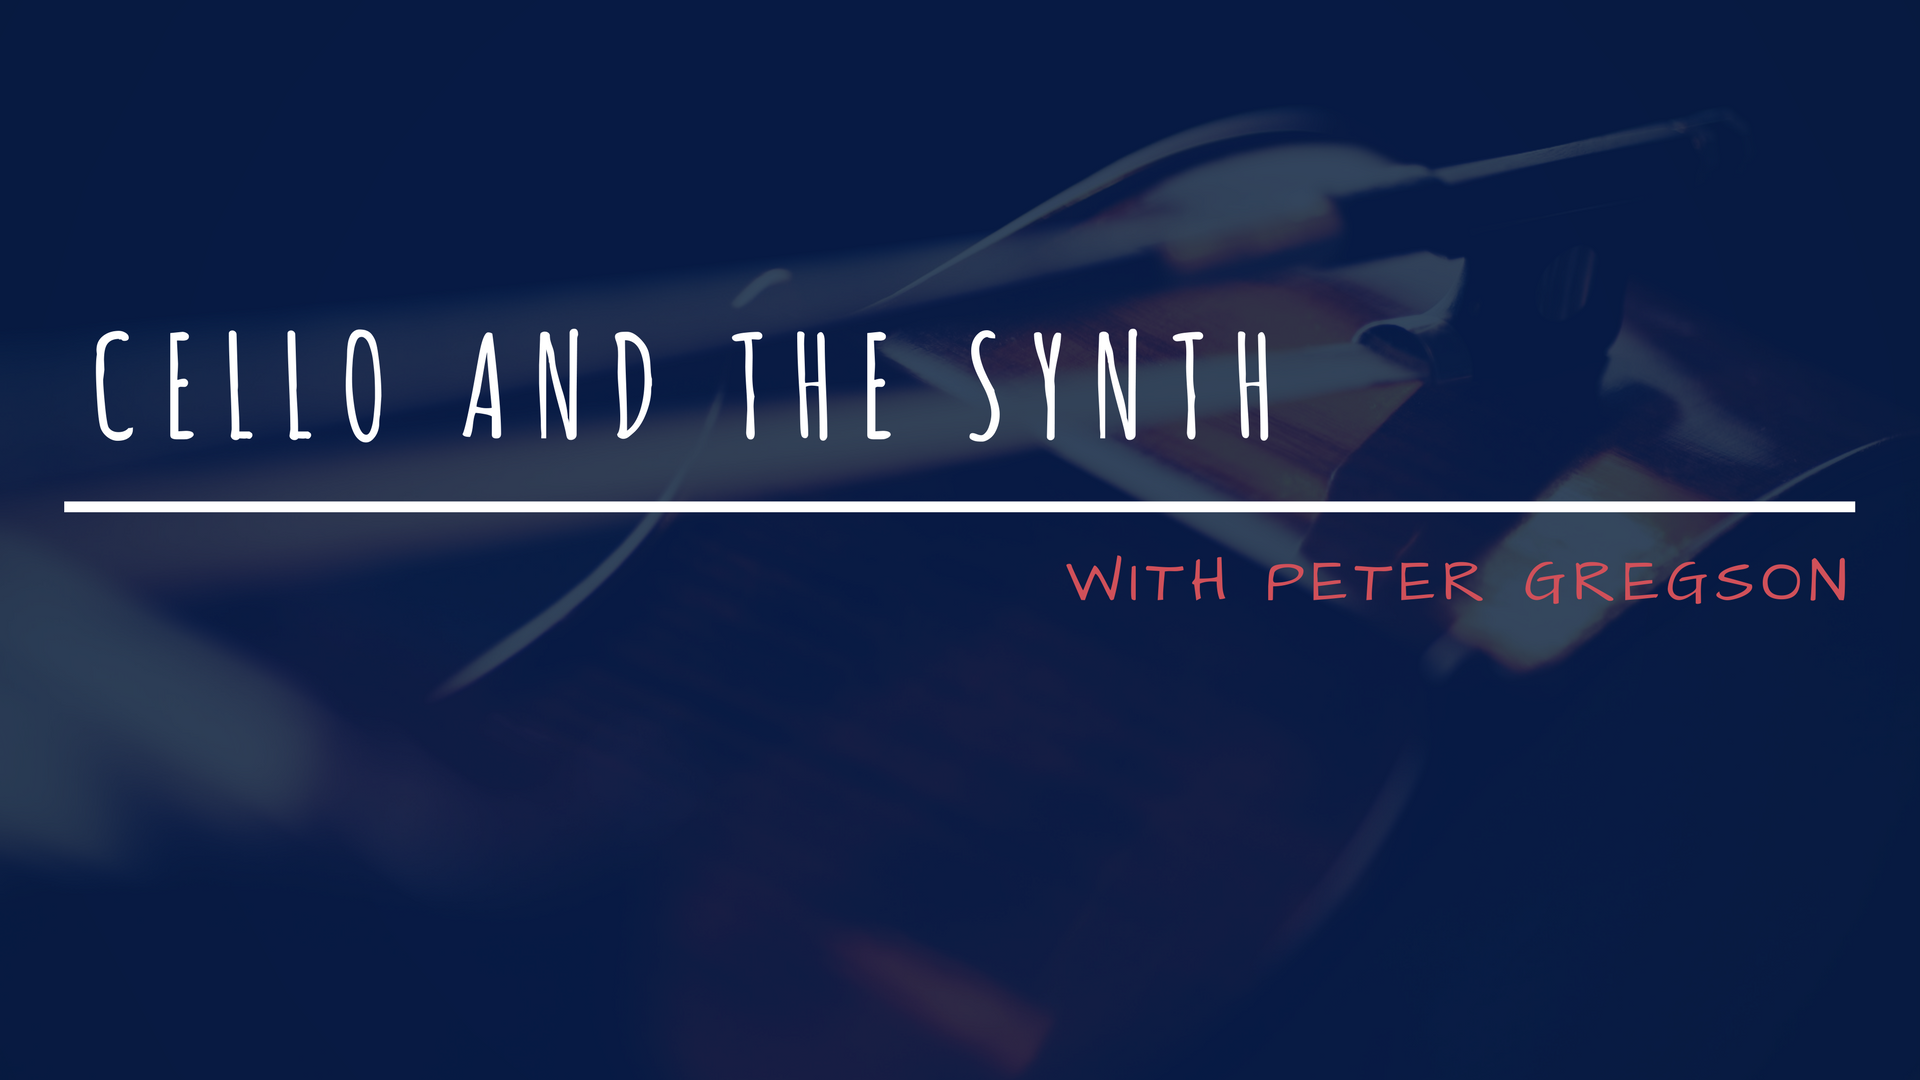 Cellos and Synths with Peter Gregson